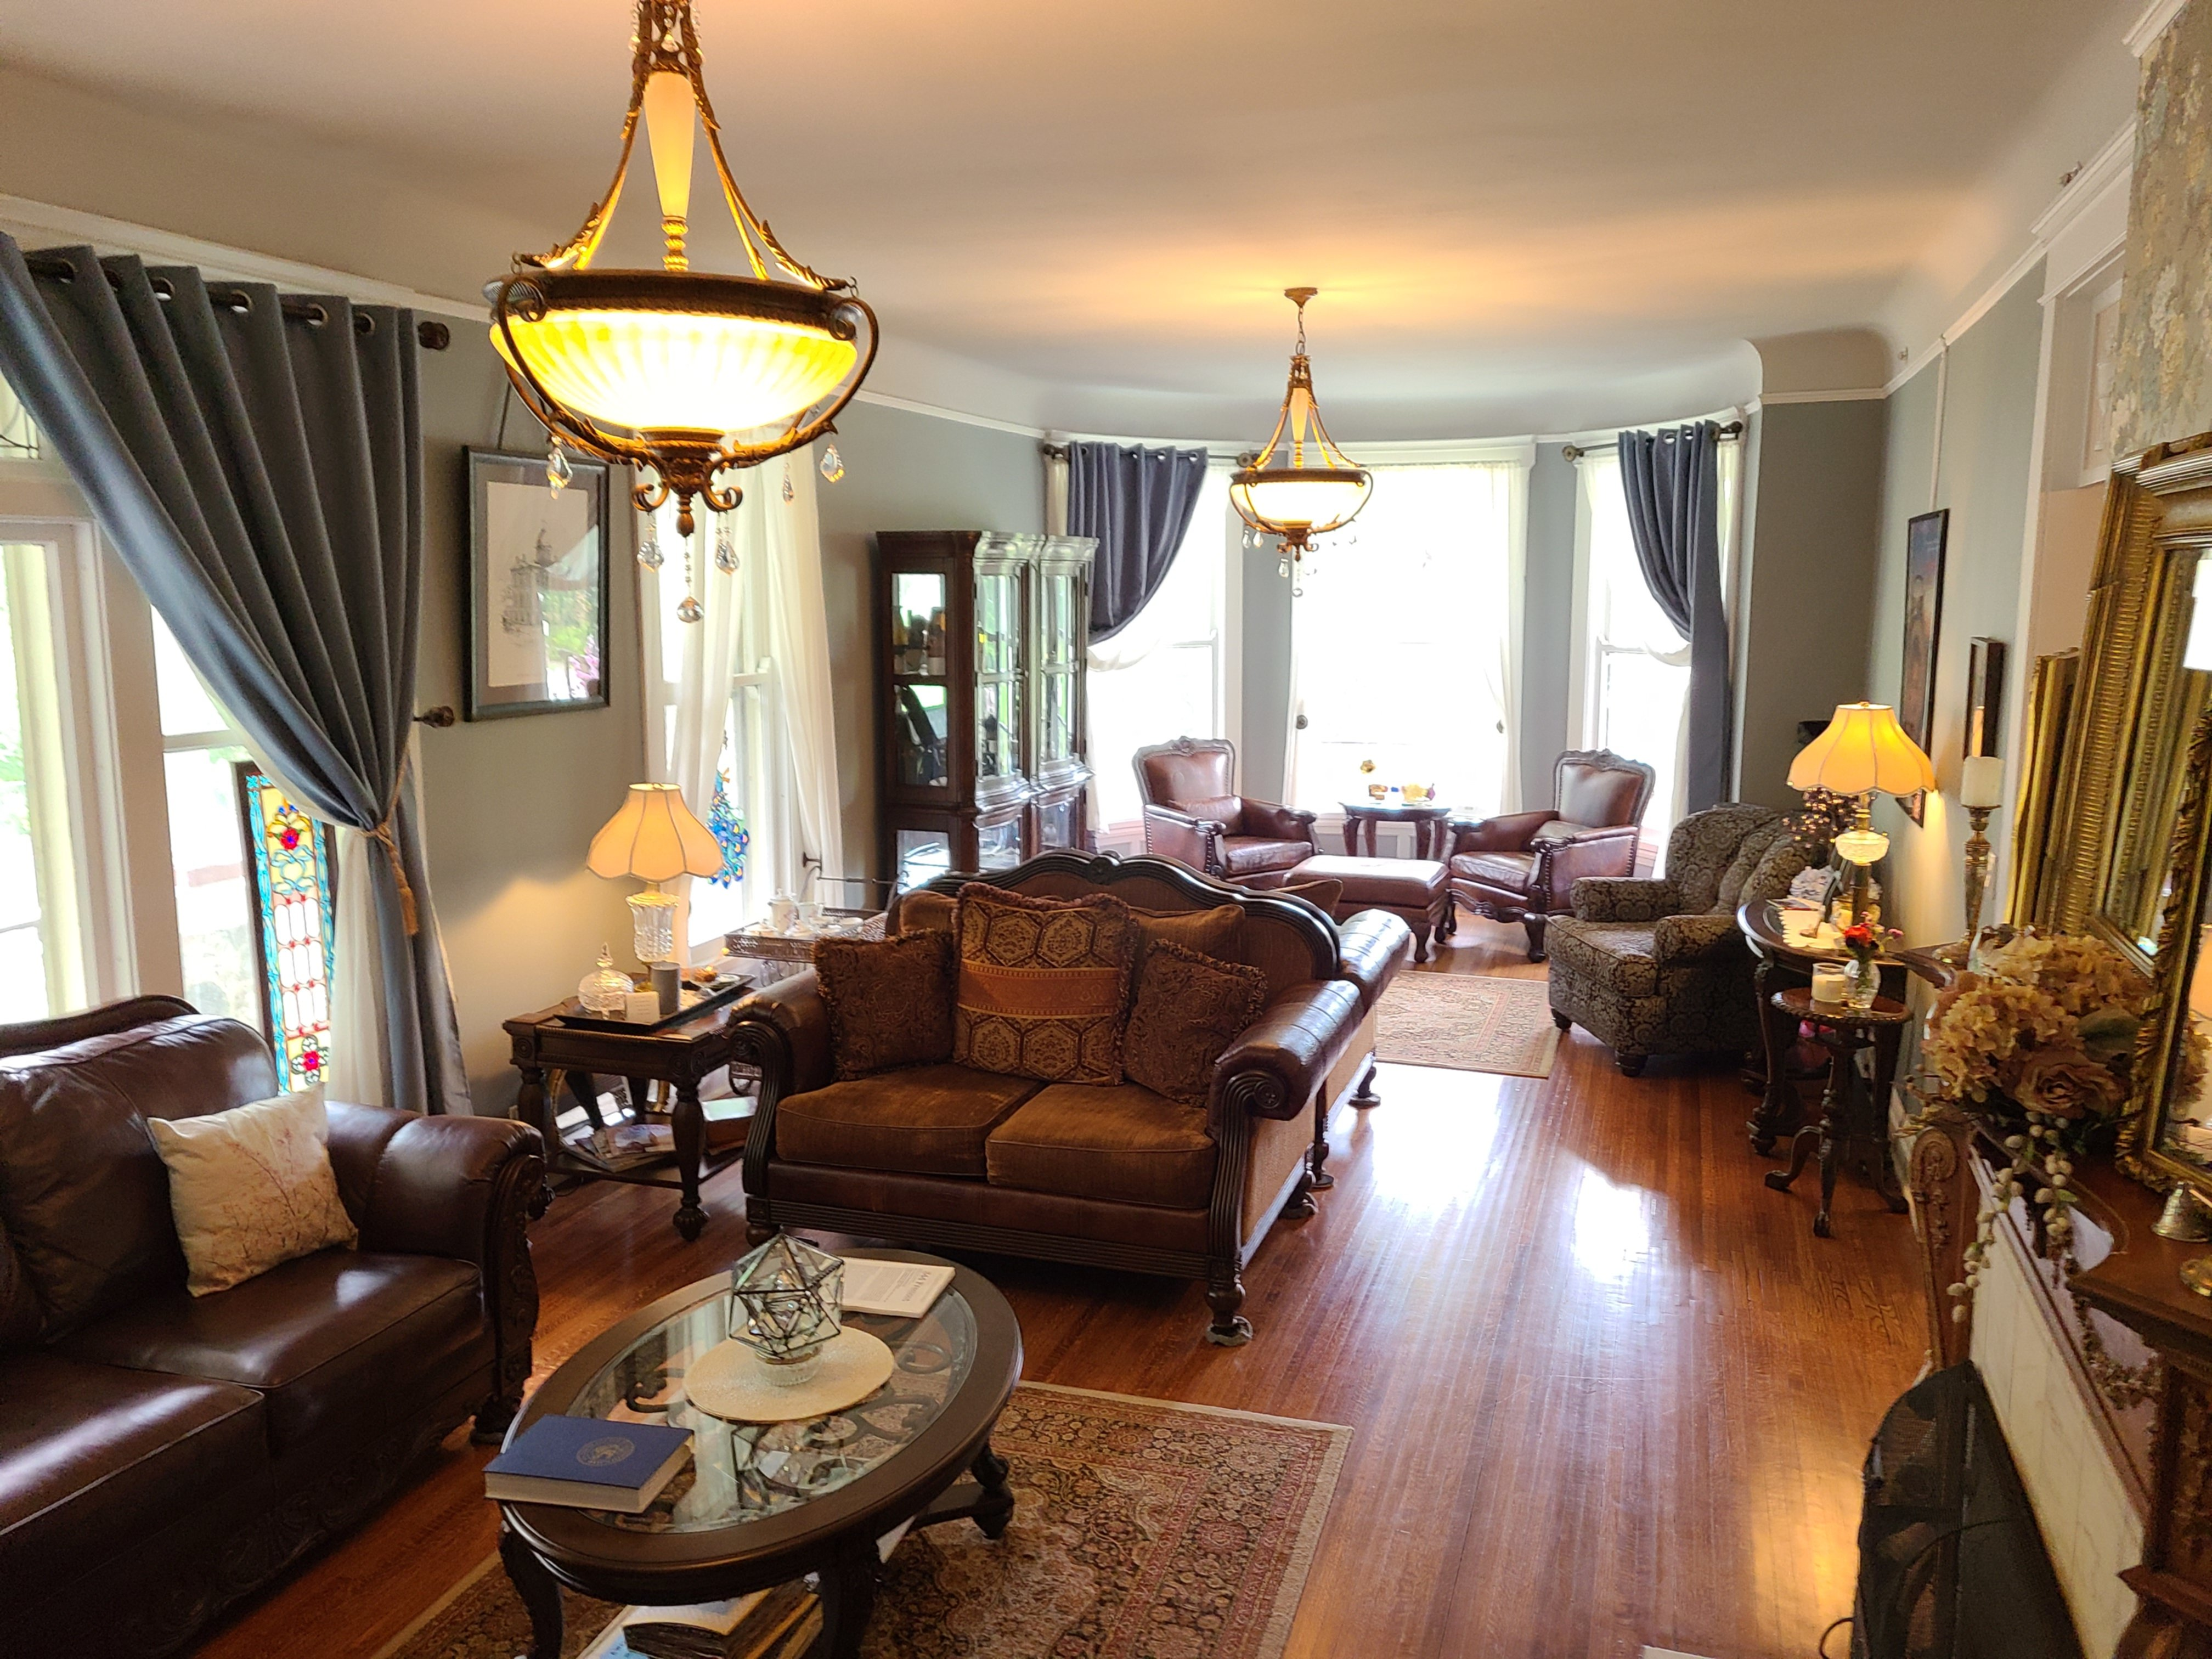 A living room filled with furniture and a fire place at The Cherry Tree Inn B&B .